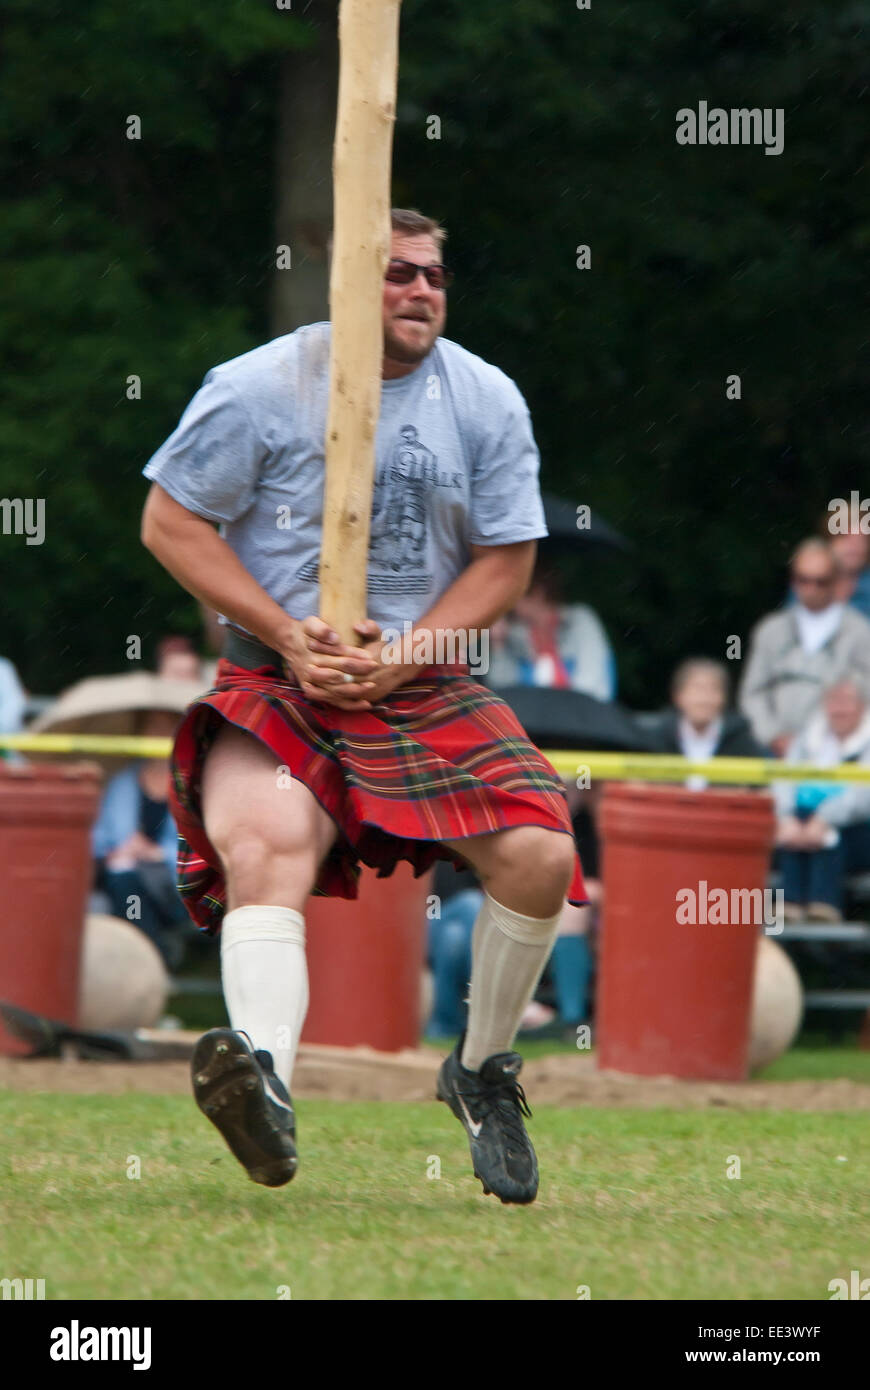 Caber toss, Scottish heavy games - Stock Image